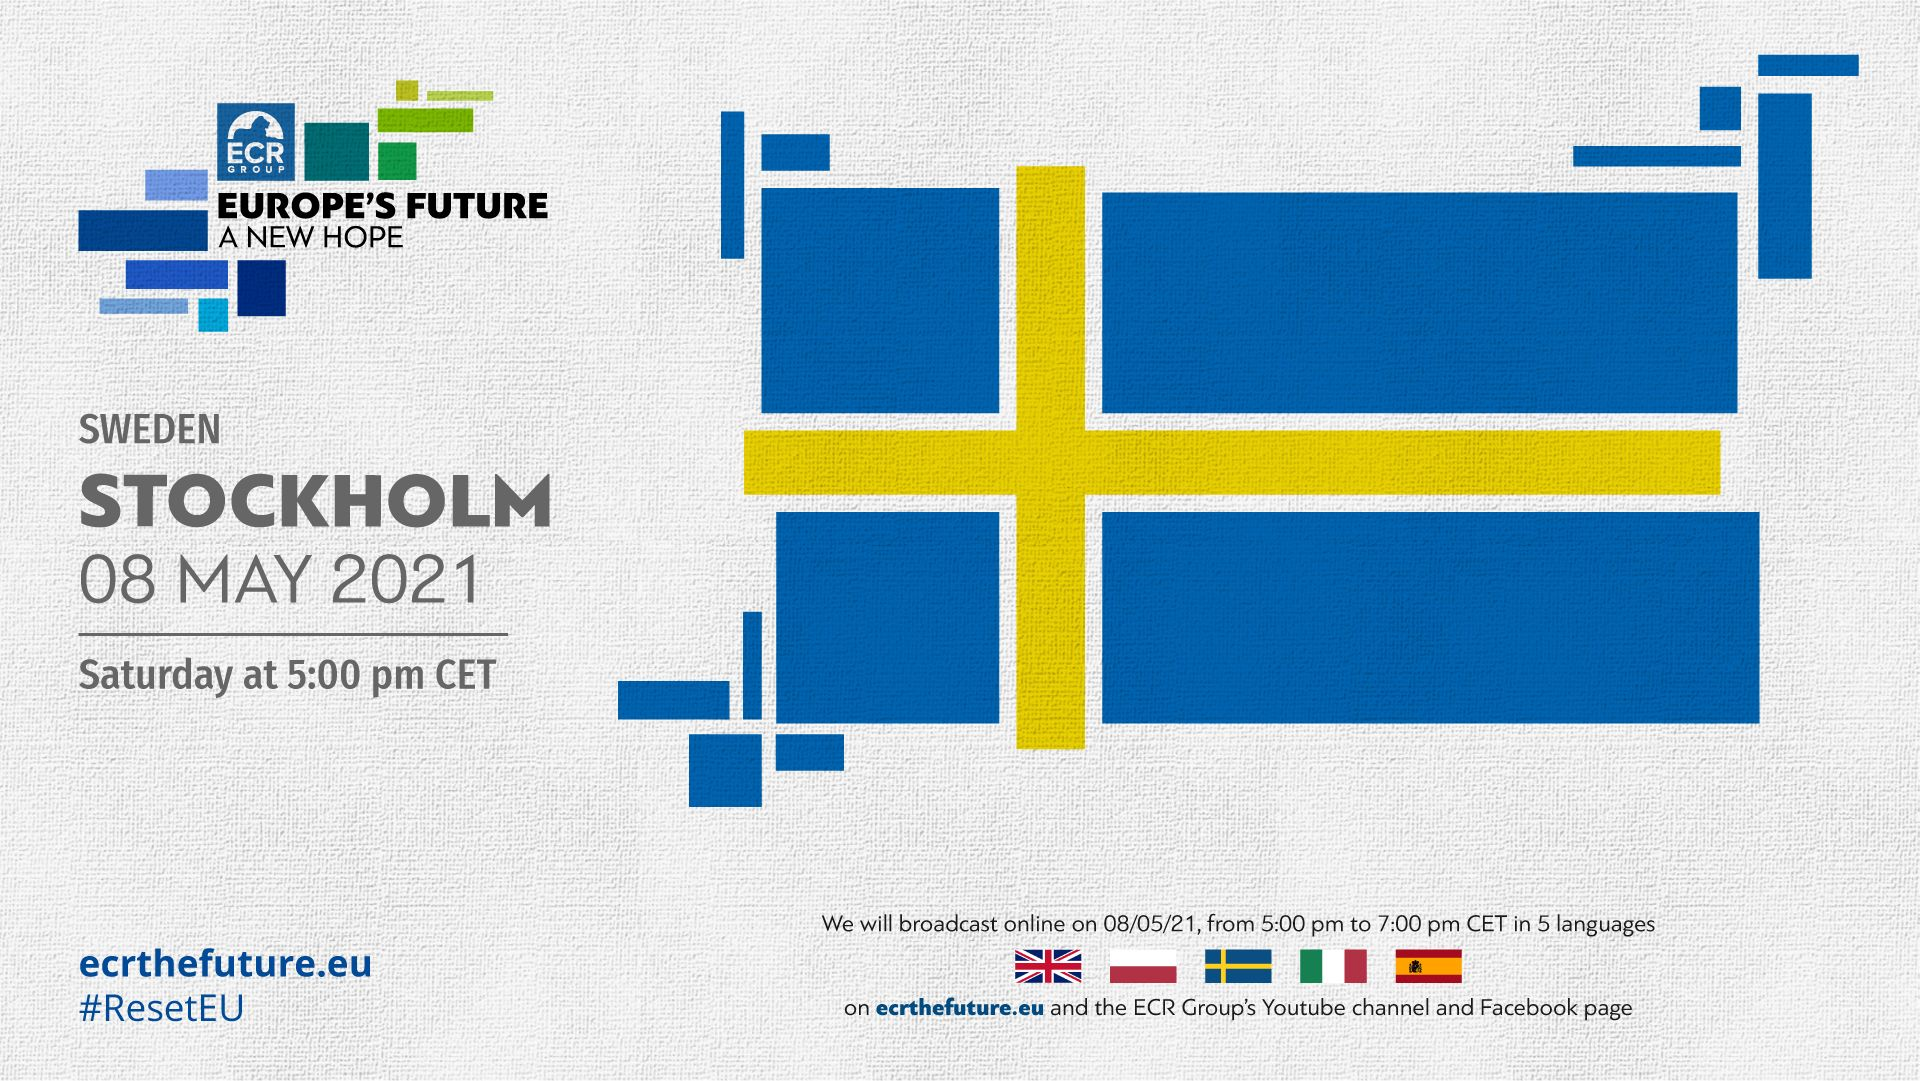 The ECR Group's Conference on the Future of Europe tour reaches Stockholm, Sweden